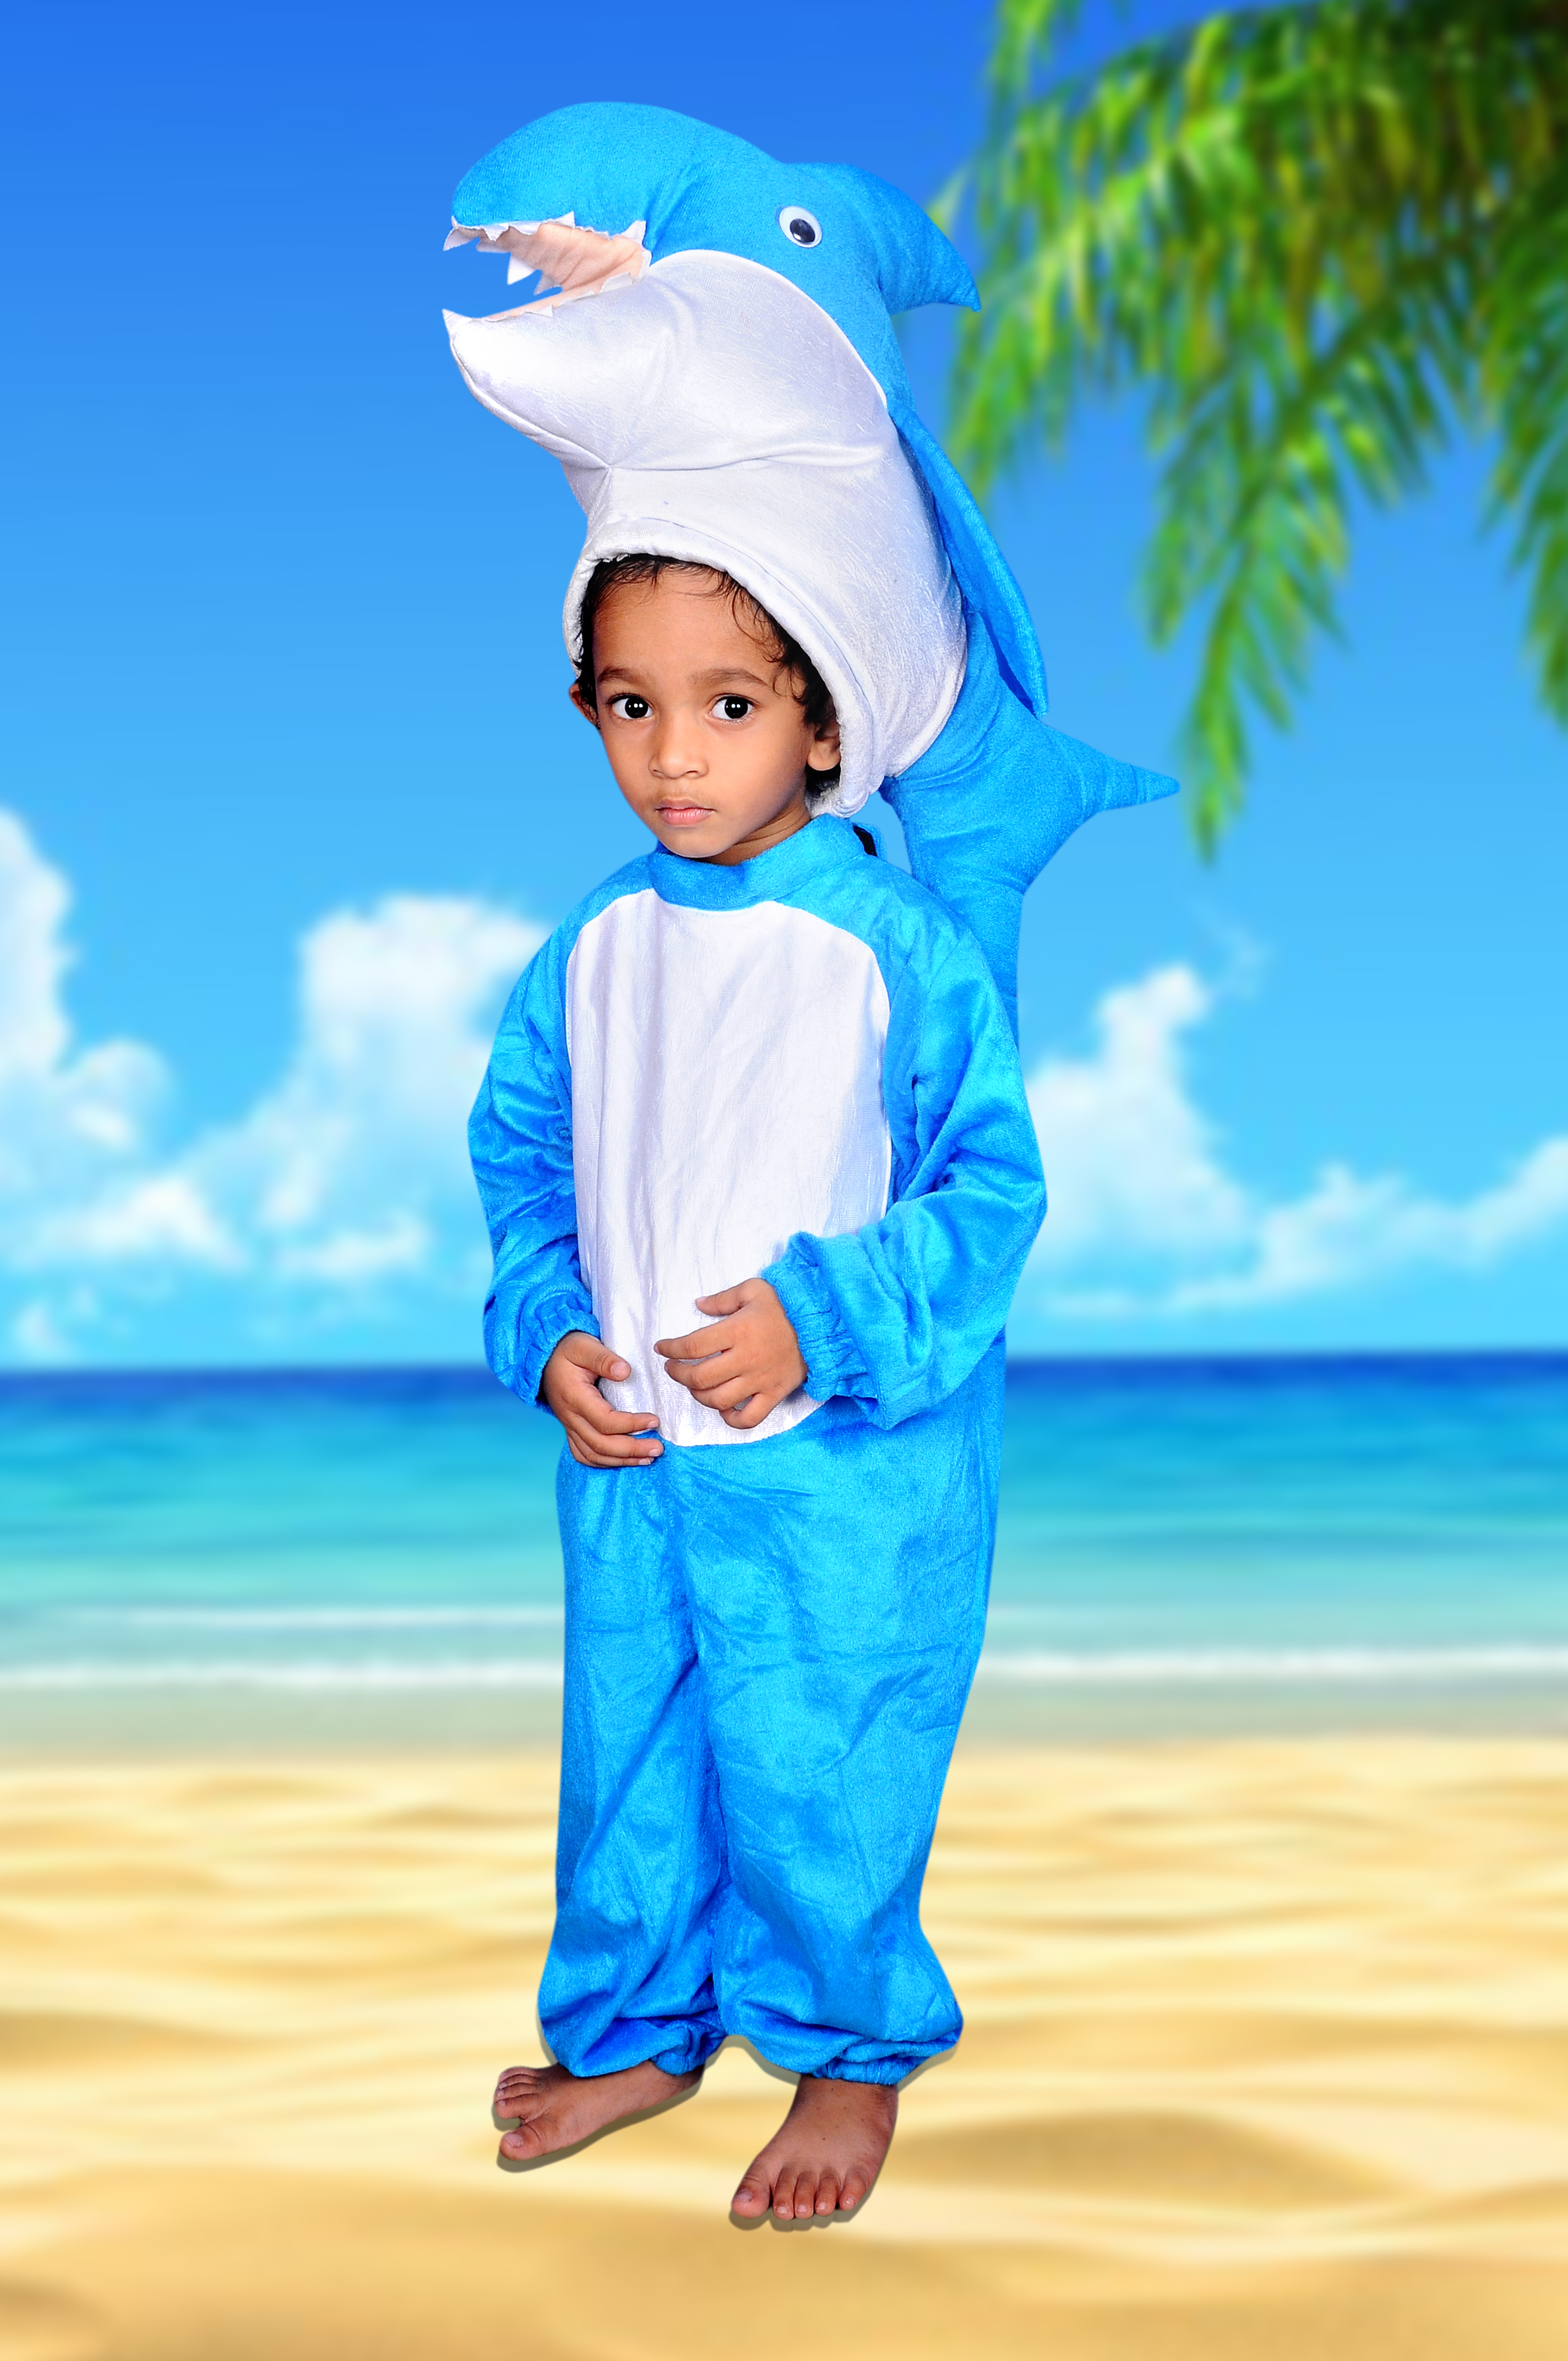 40a881abed Kids Fancy Dress Costumes For Sale In Costume Connexions 9884688463